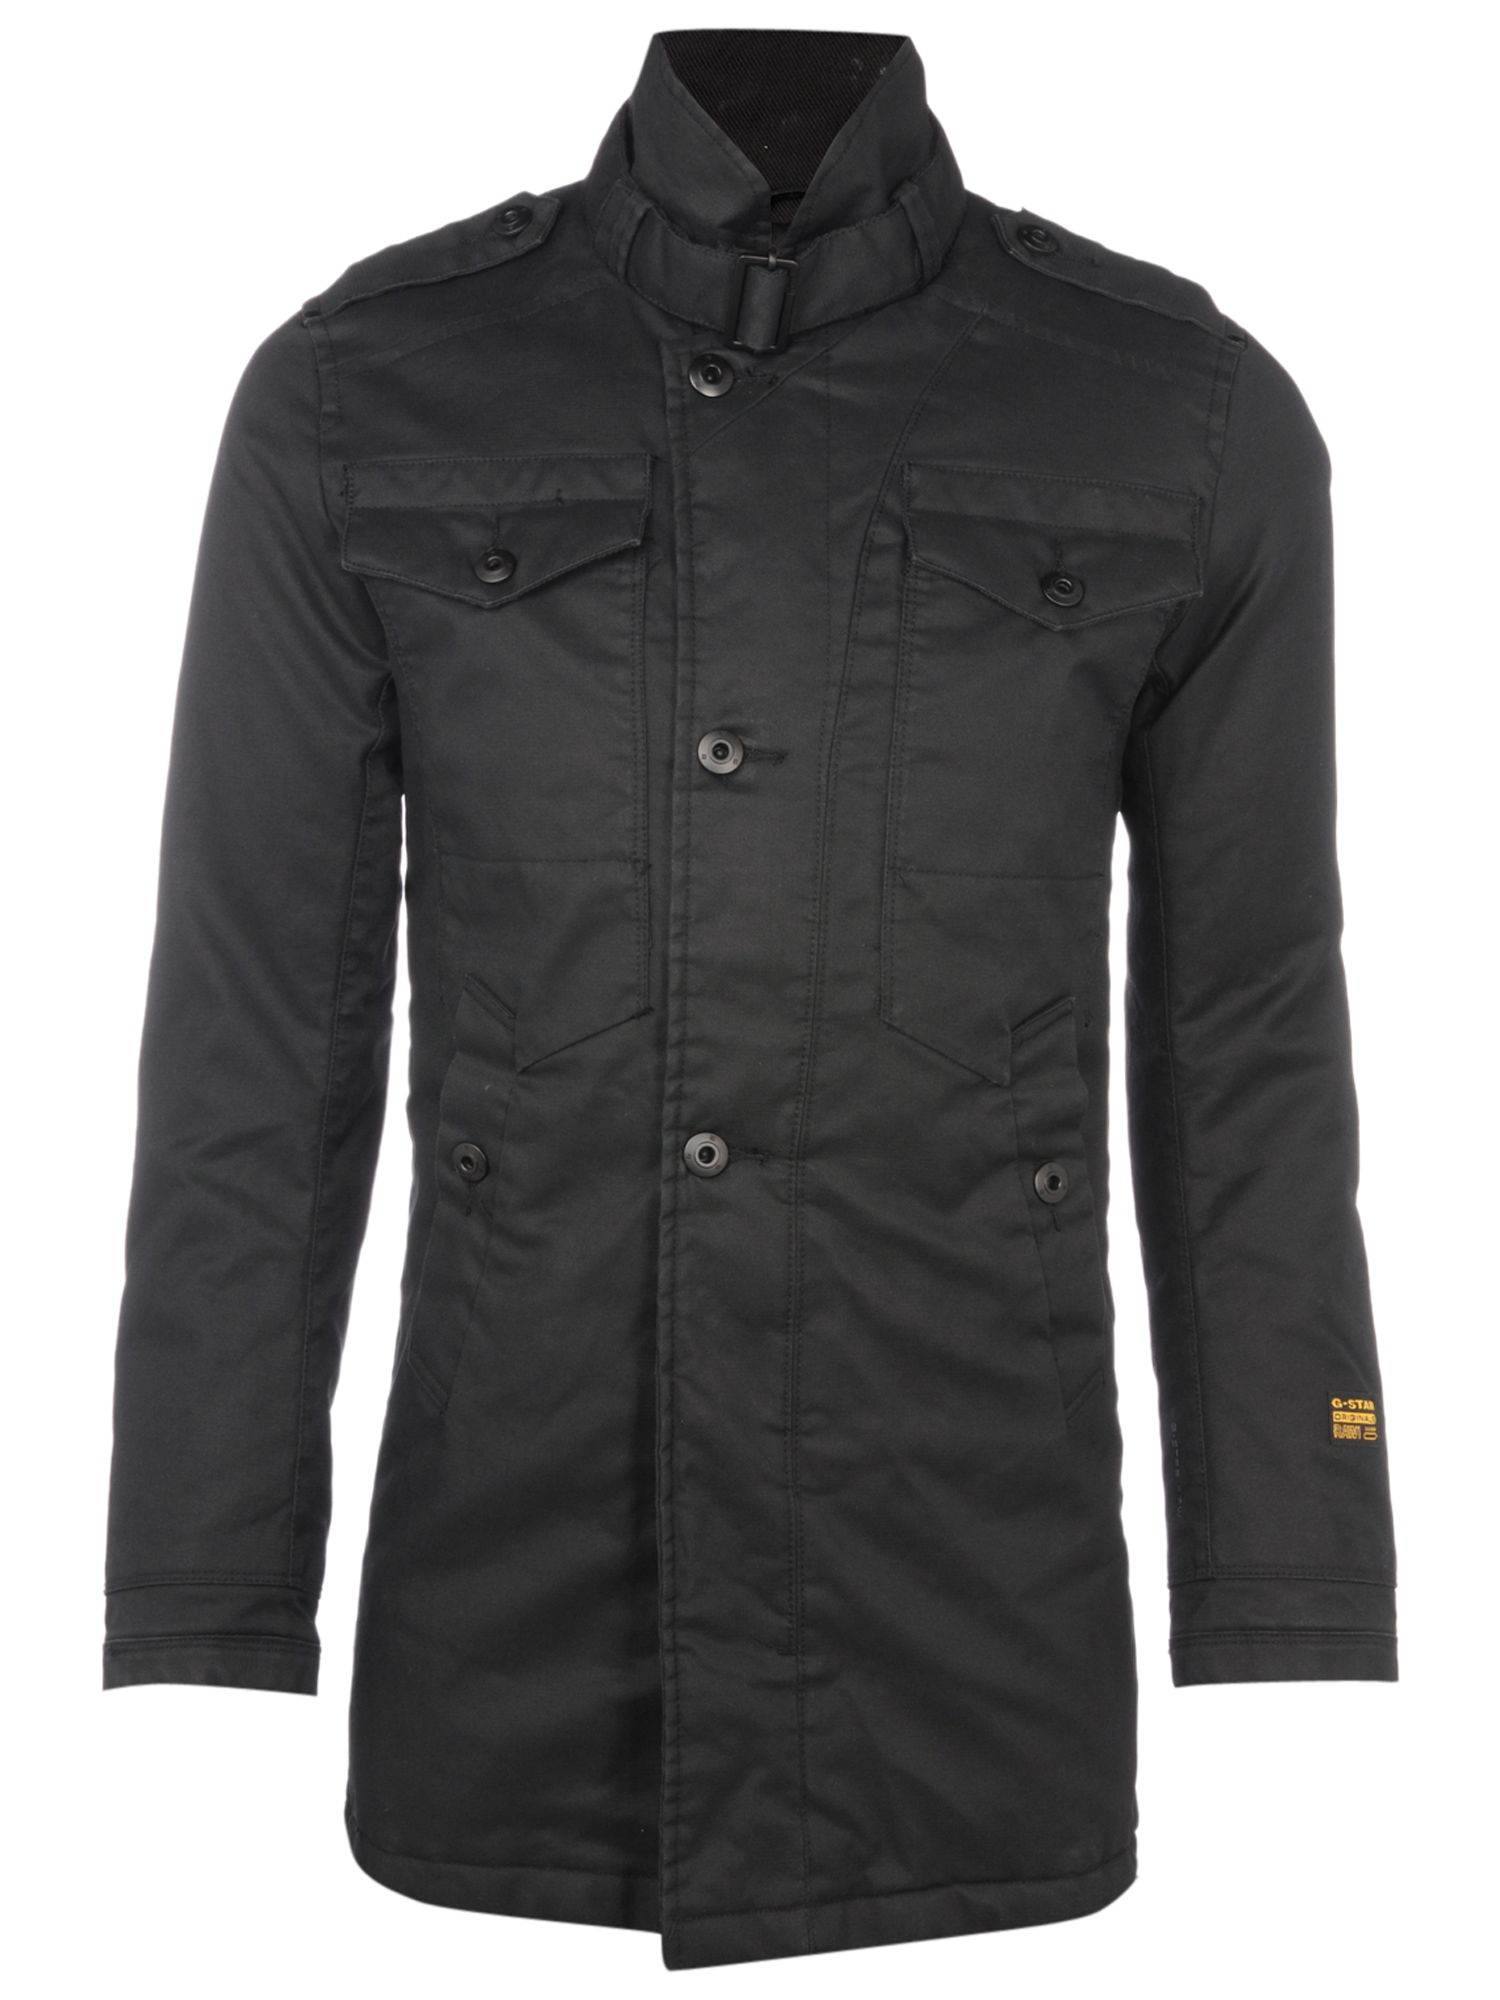 star fleet trench coat mid length casual jacket clean with soft. Black Bedroom Furniture Sets. Home Design Ideas